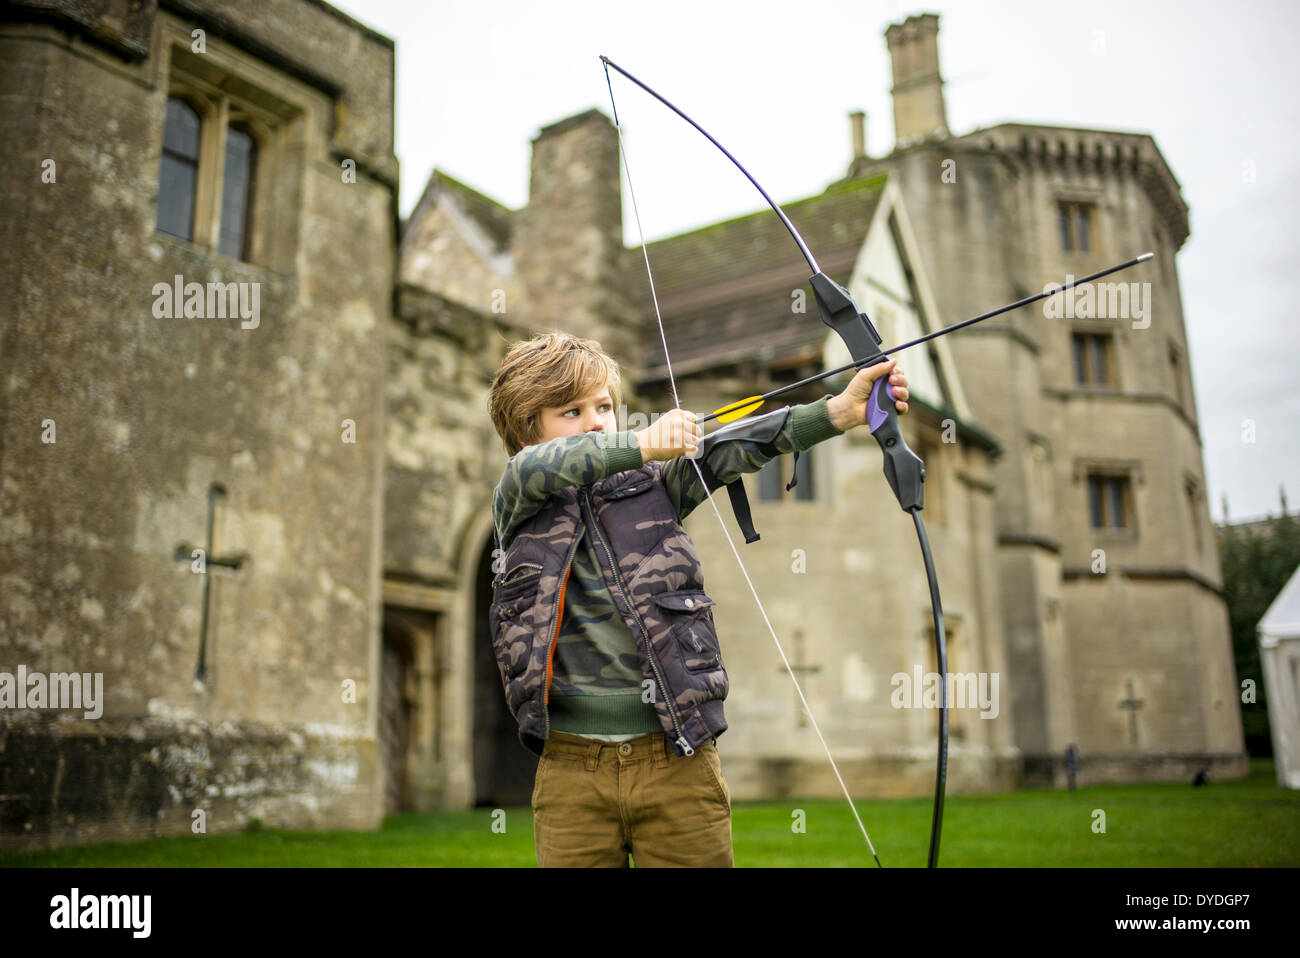 A young boy in Thornbury Castle garden playing archery. - Stock Image